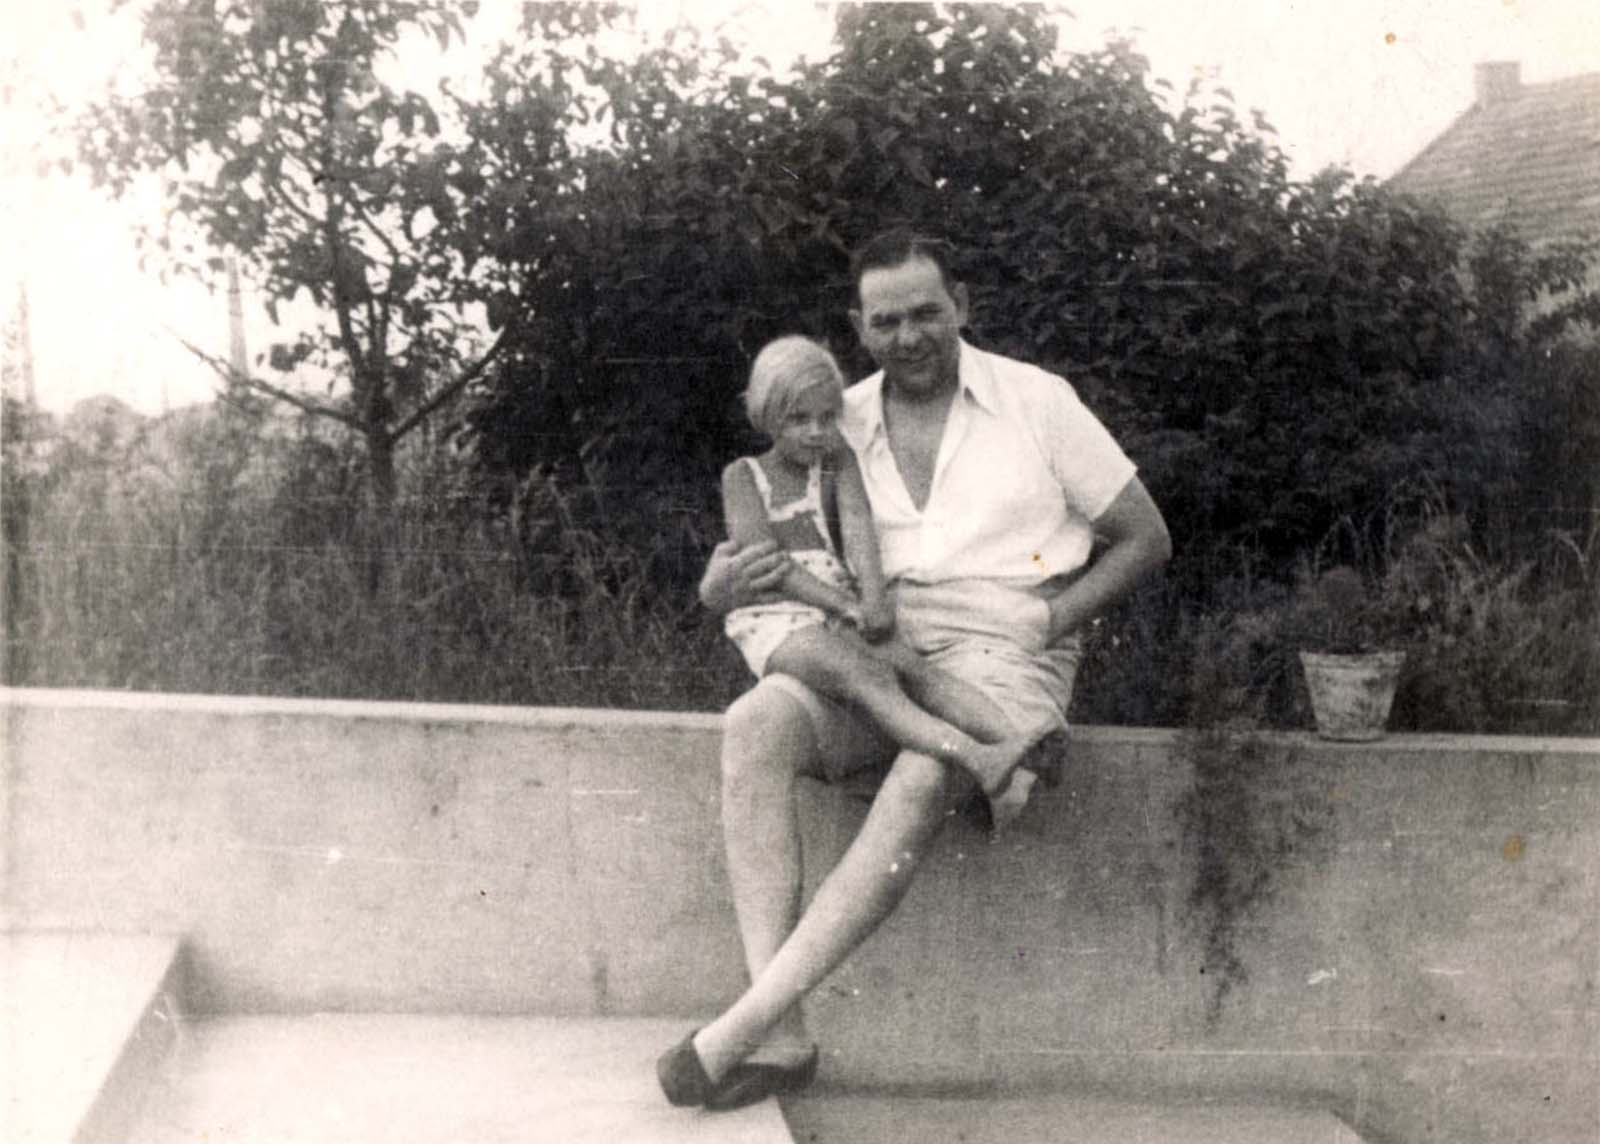 Amon Goeth with his daughter, 1943. He married Anny Geiger in a civil SS ceremony on 23 October 1938. The couple had three children, Peter, born in 1939, who died of diphtheria at age 7 months, Werner, born in 1940, and a daughter, Ingeborg, born in 1941.